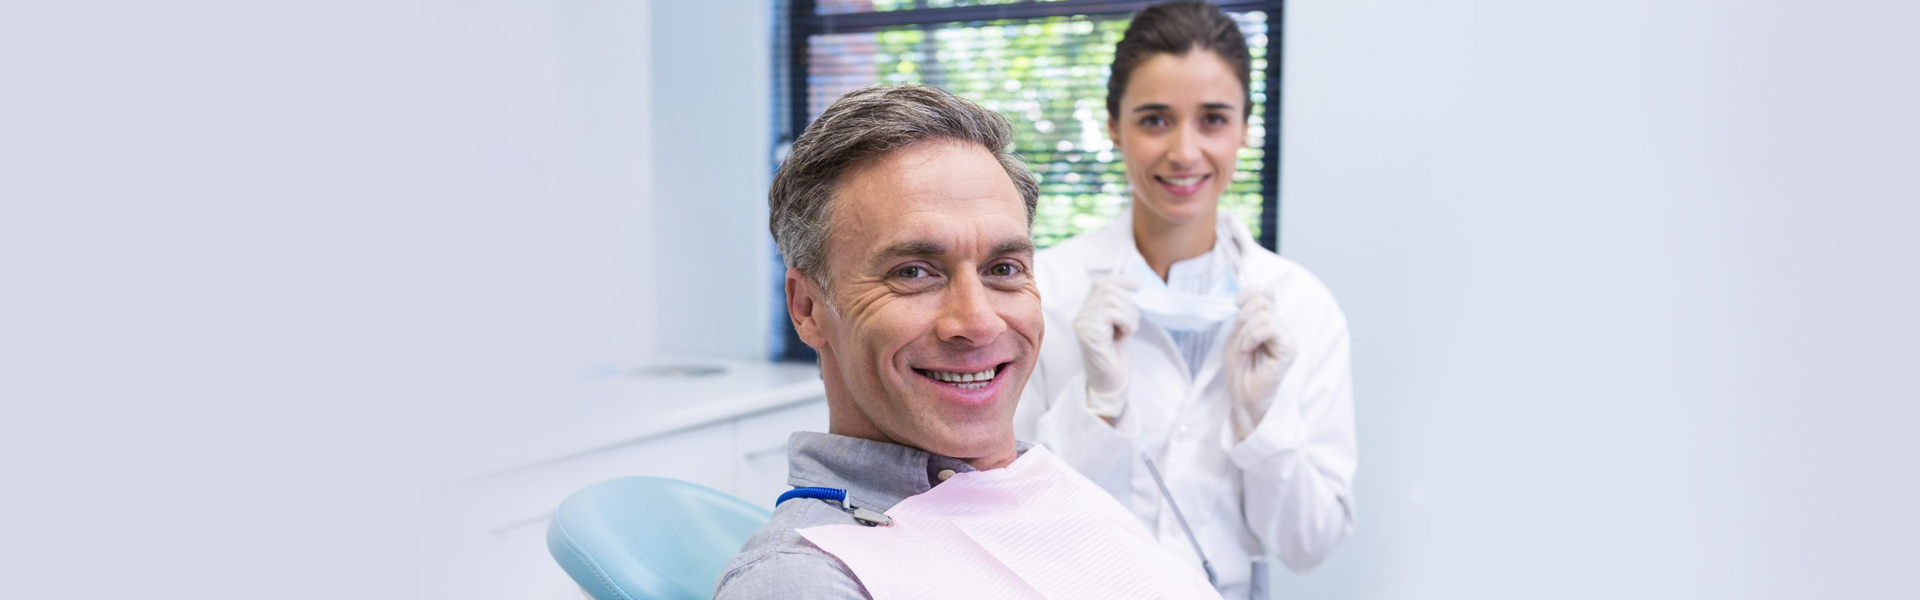 The Top Five Benefits of Having Whiter Teeth